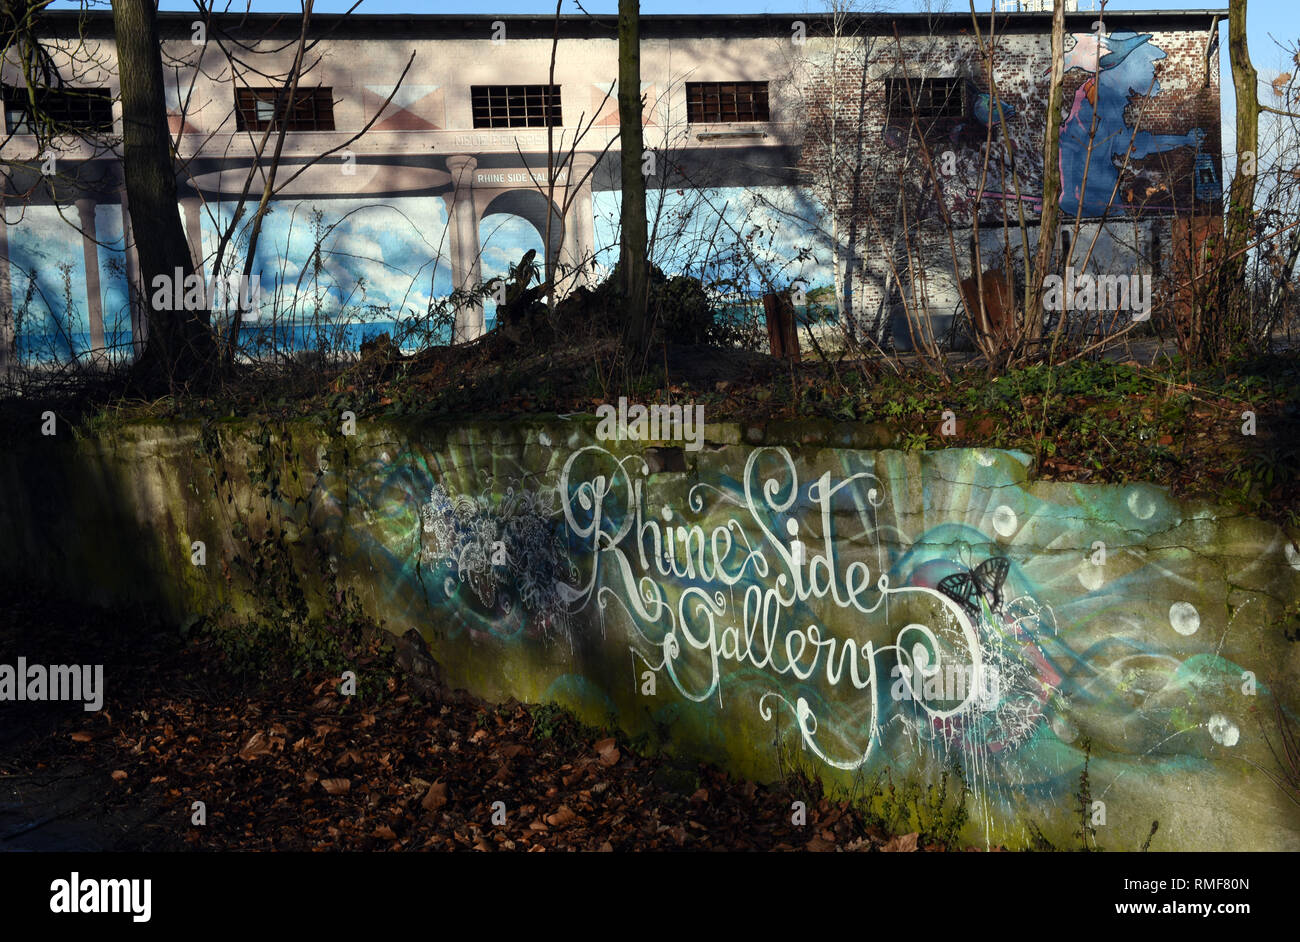 Krefeld, Germany. 11th Feb, 2019. The logo of the 'Rhine Side Gallery' on a wall in front of the Gallery building on the banks of the Rhine in the district of Uerdingen. Credit: Horst Ossinger/dpa/Alamy Live News - Stock Image